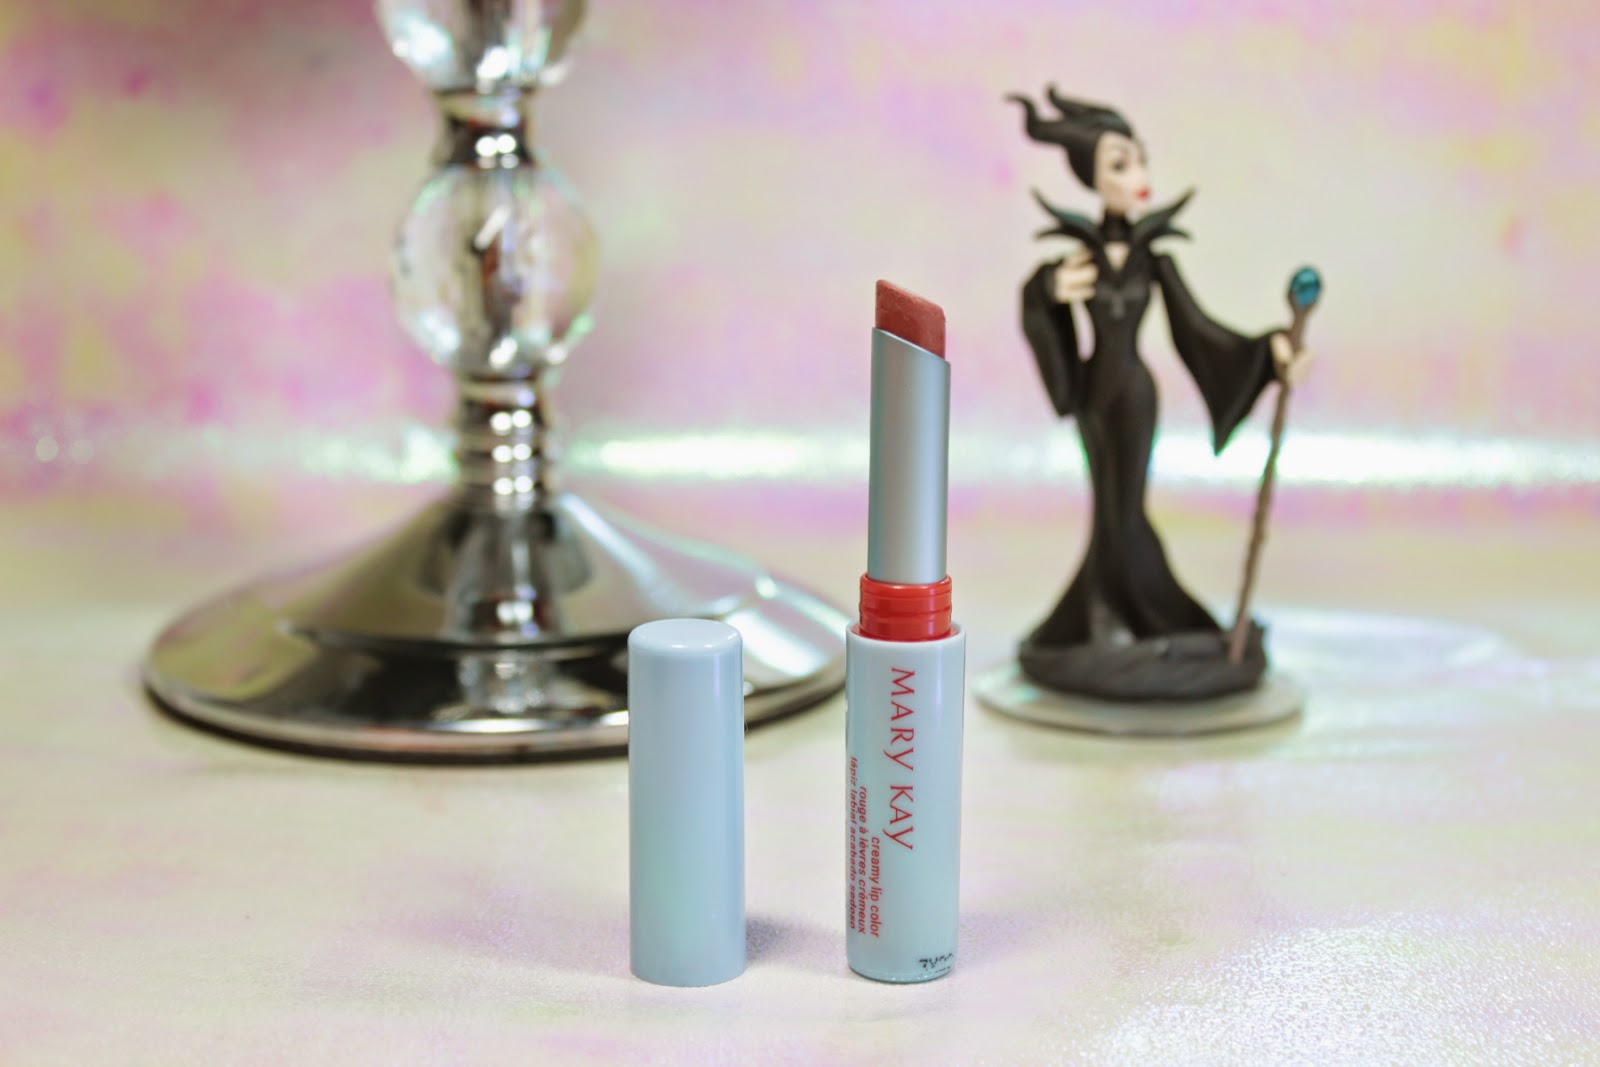 mary kay, edição limitada, limited edition, maleficent, batom, clips, boca, lipstick, retro rose, presente, gif, fashion mimi, sedoso, cremoso, mate, matte